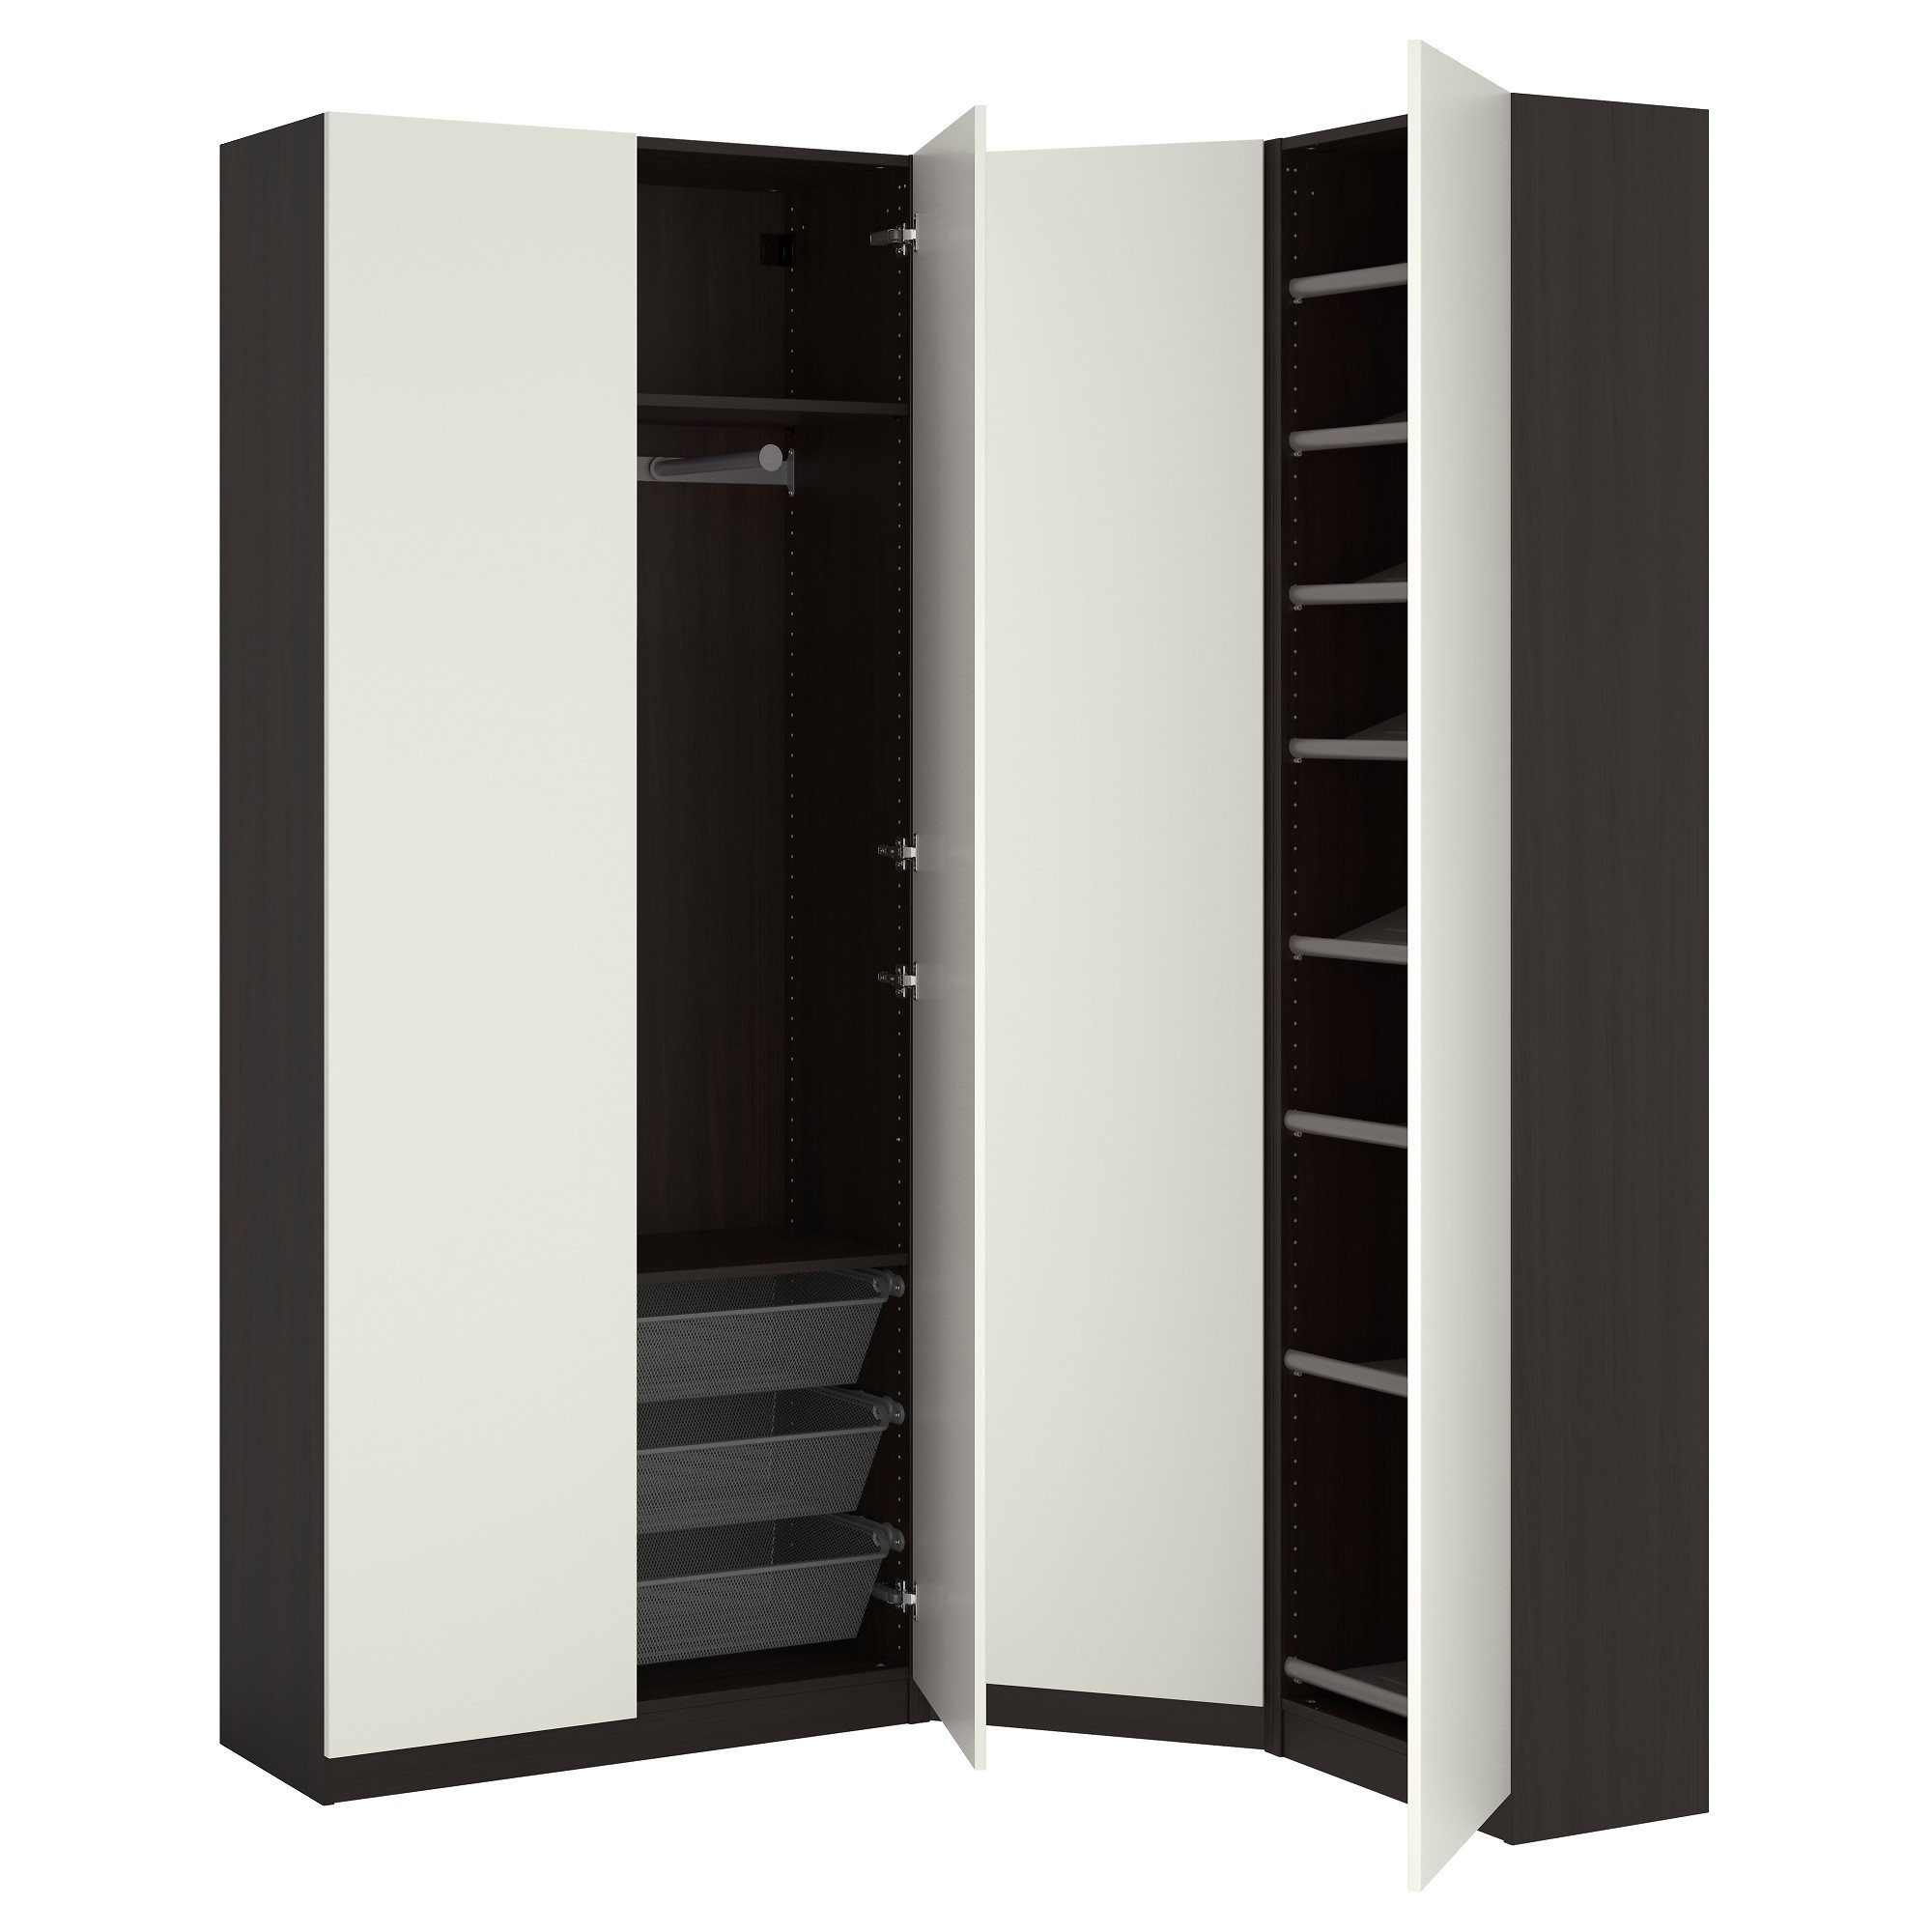 armoire de chambre ikea armoire de chambre ikea with armoire de chambre ikea free armoire. Black Bedroom Furniture Sets. Home Design Ideas